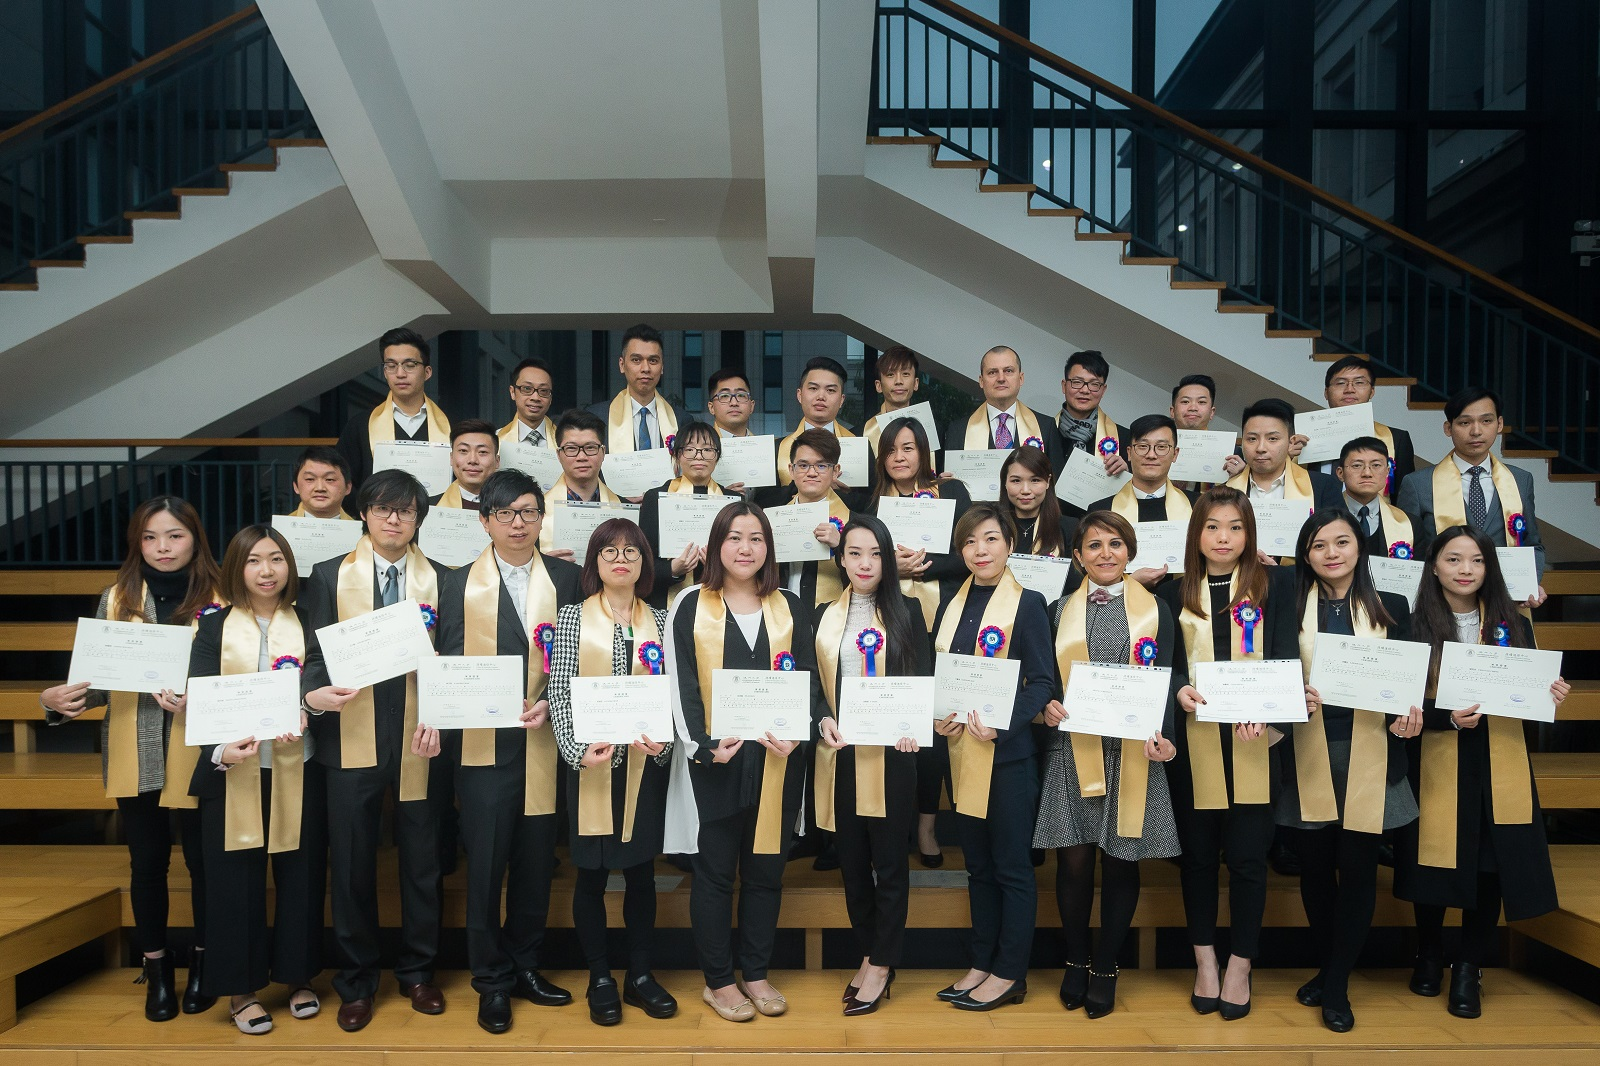 Sands China Ltd. and the University of Macau's Centre for Continuing Education recognise the third group of Sands China team members to graduate from the customised one-year Diploma Programme in Business Management at a graduation ceremony at the university Tuesday.